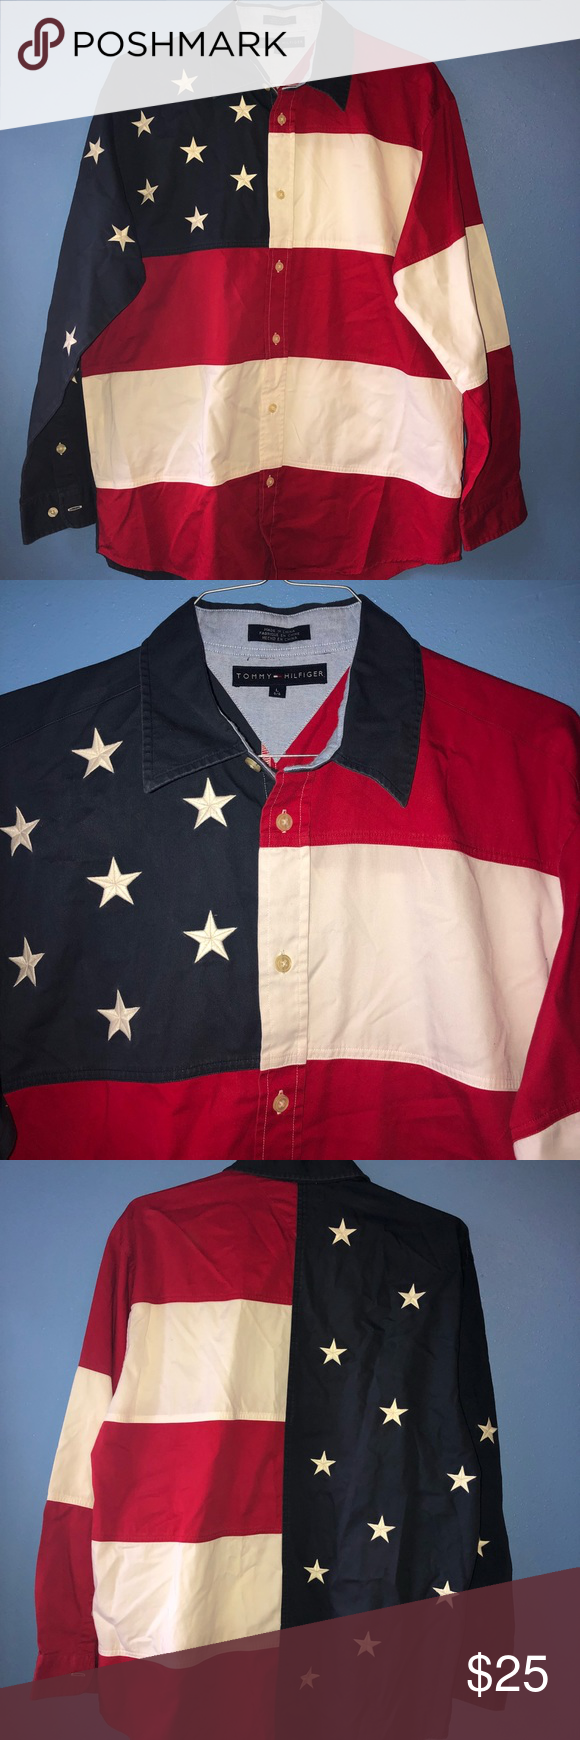 061dd0176 Tommy Hilfiger USA Vintage Shirt Tommy Hilfiger Vintage USA Shirt. Size L.  Has been